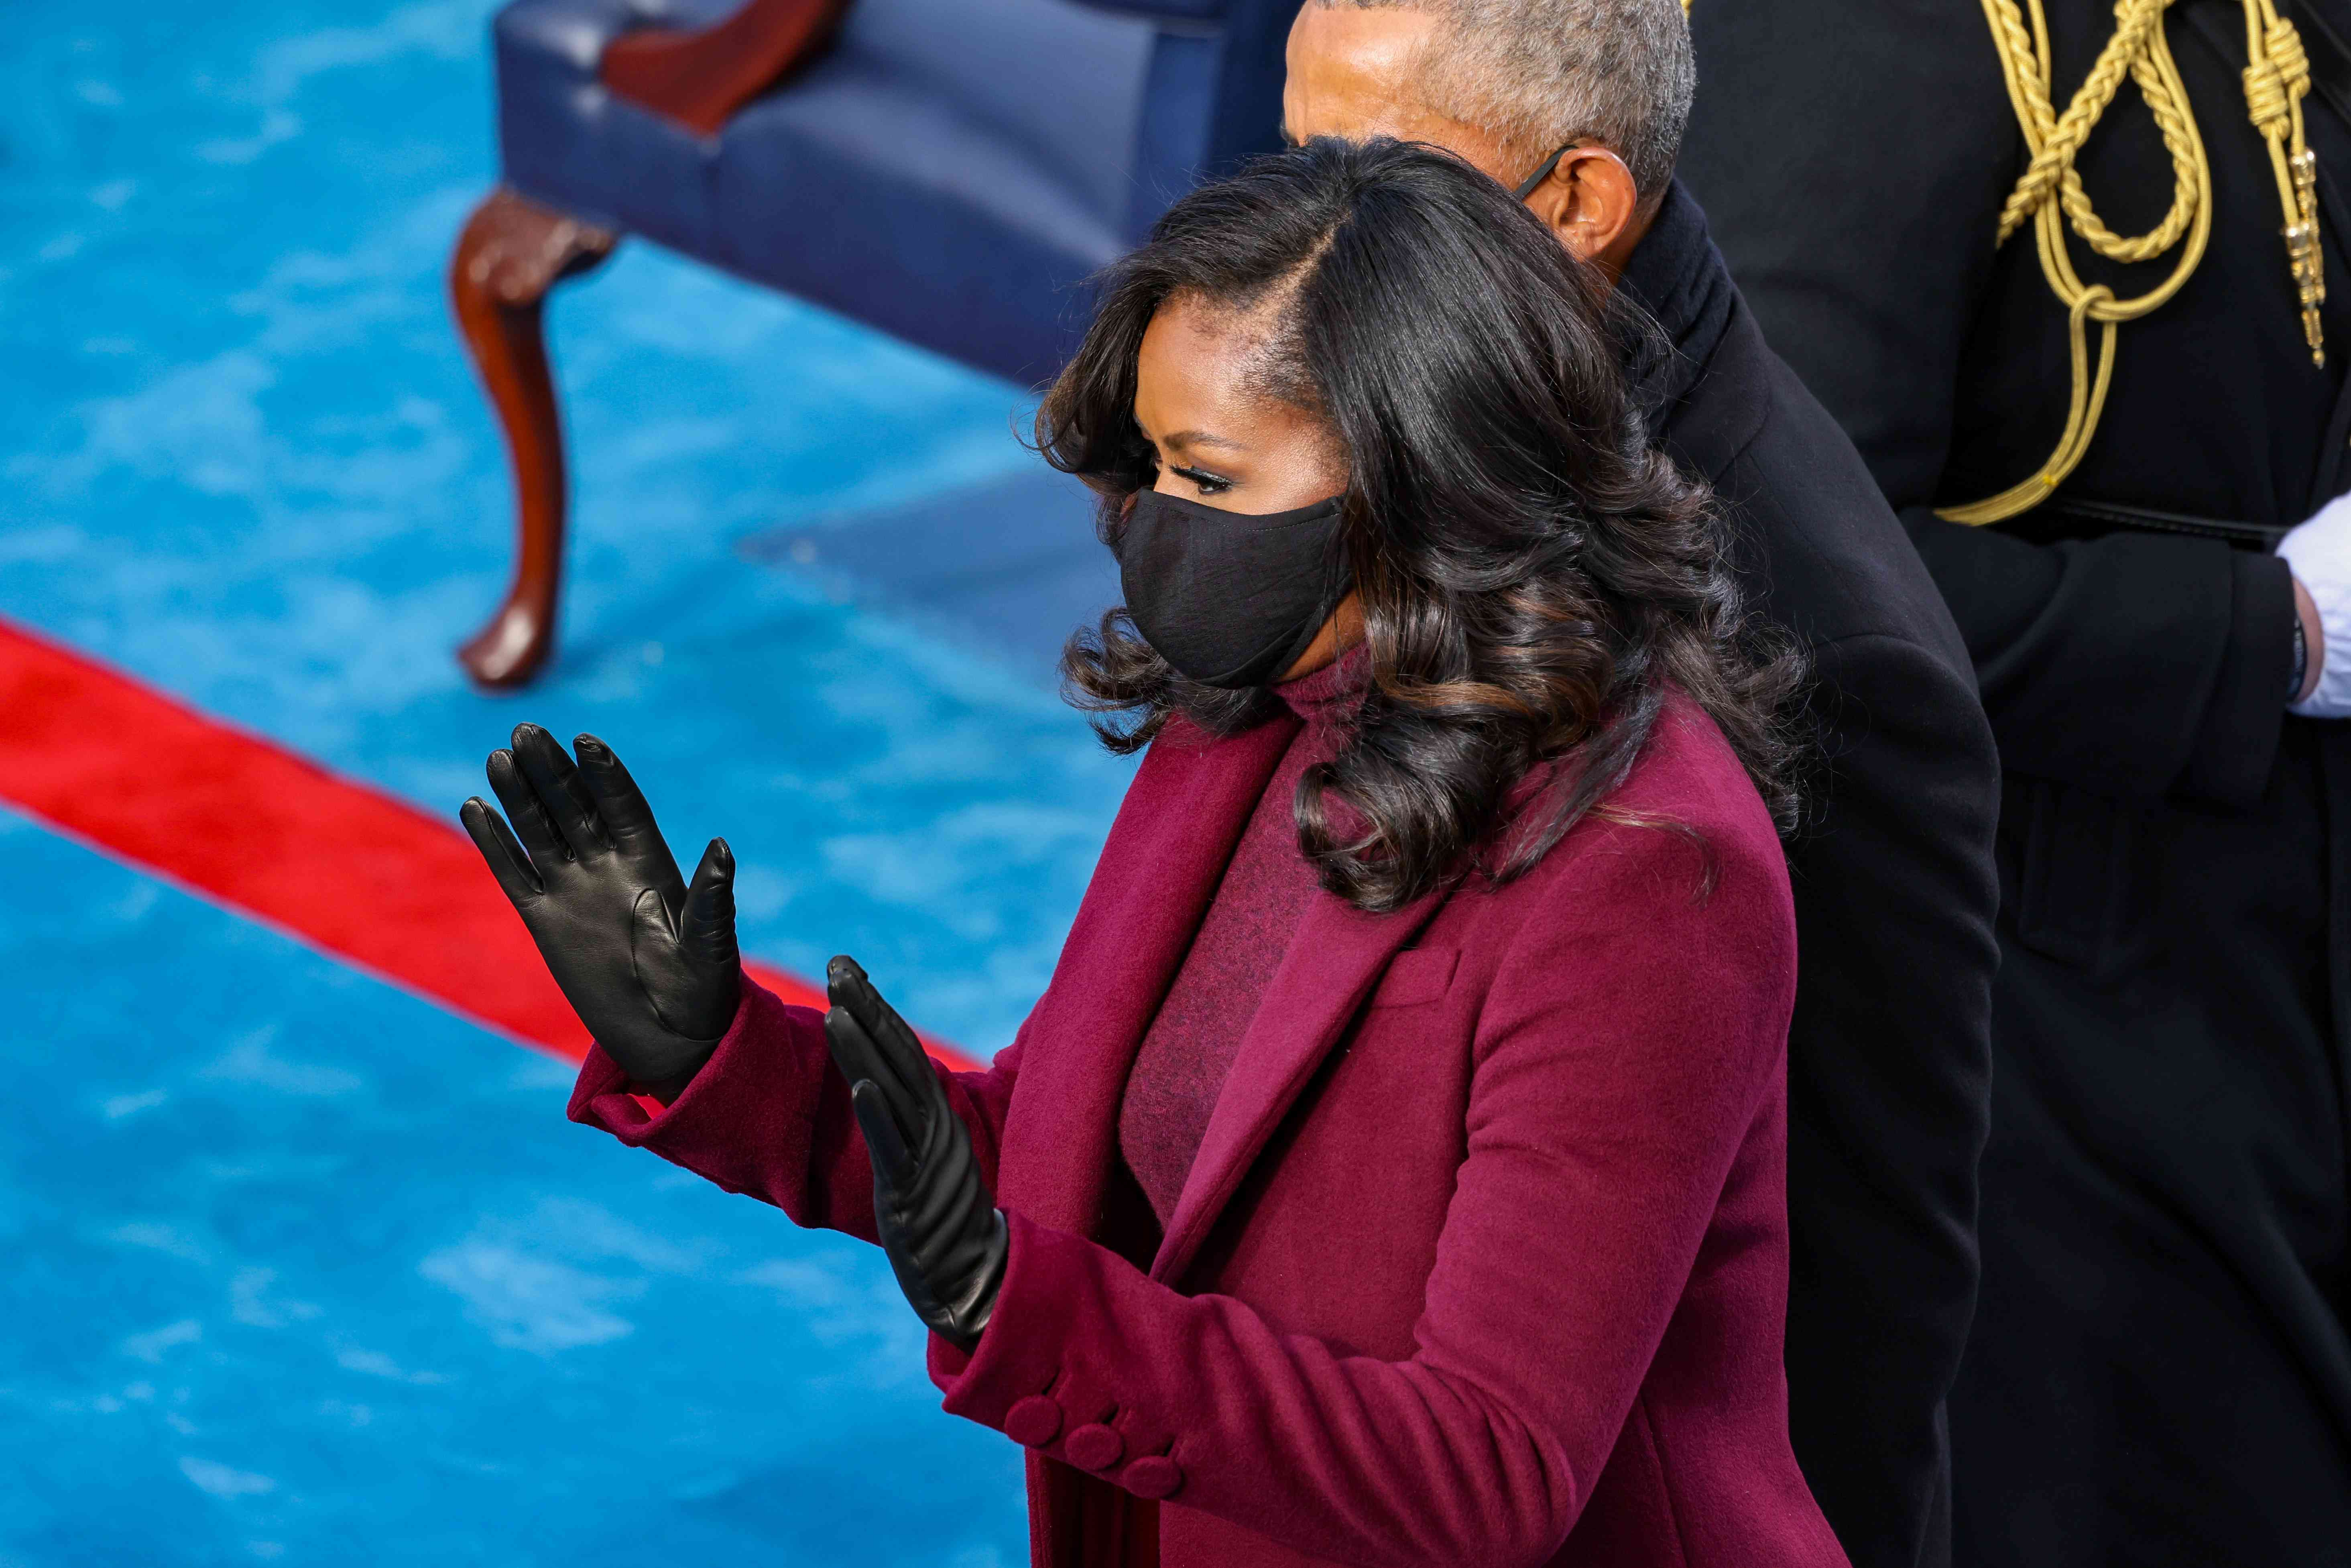 Former U.S. President Barack Obama and former first lady Michelle Obama arrive to the inauguration of U.S. President-elect Joe Biden on the West Front of the U.S. Capitol on January 20, 2021 in Washington, DC.